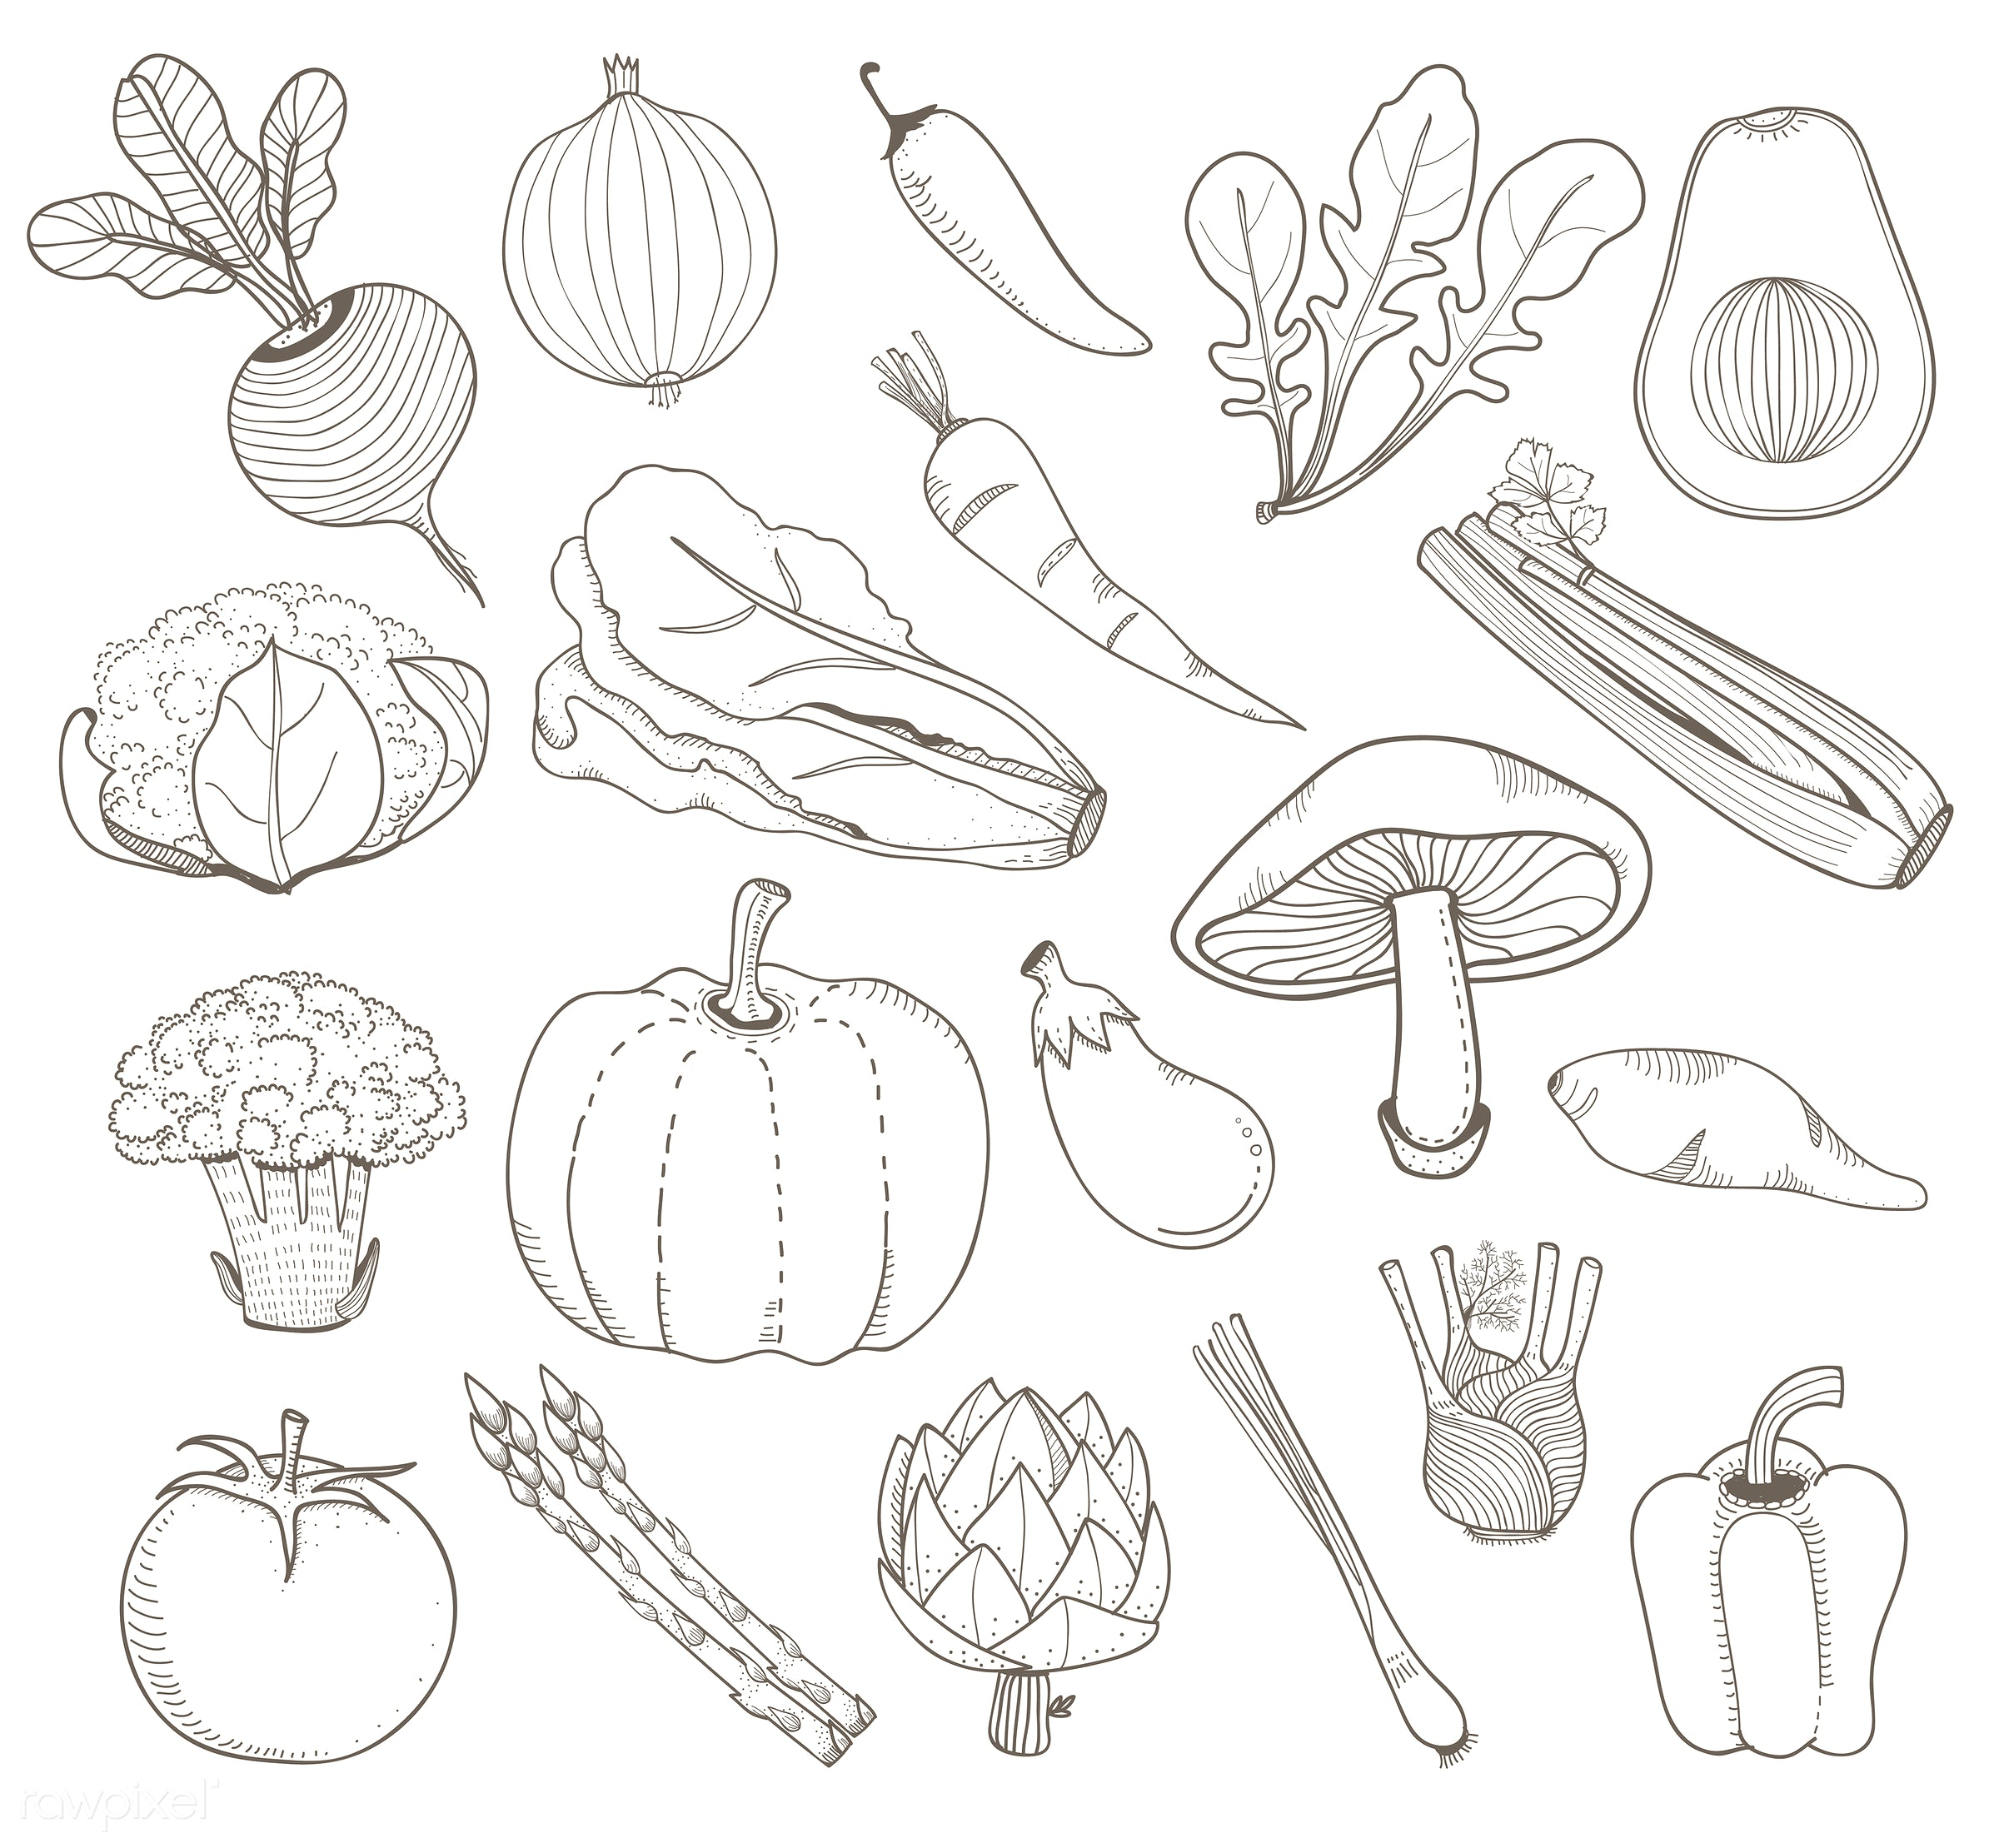 Vector of different kinds of vegetables - collection, design, doodle, farmers, food, graphic, illustration, isolated,...